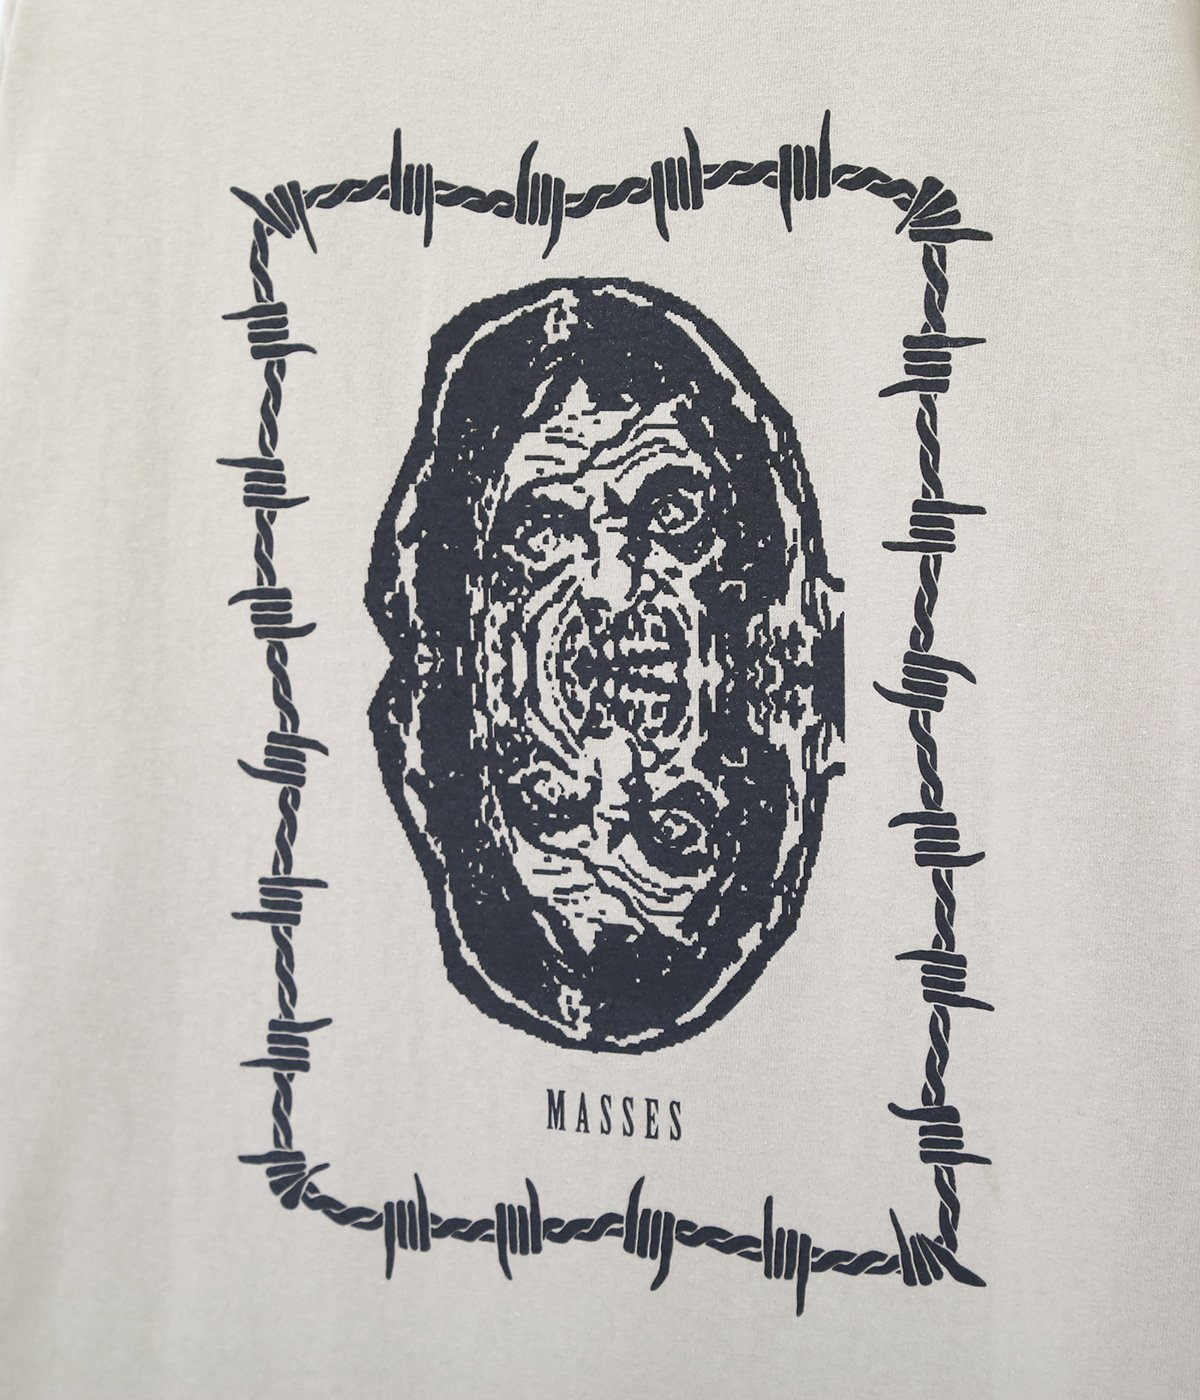 T-SHIRTS WIRE